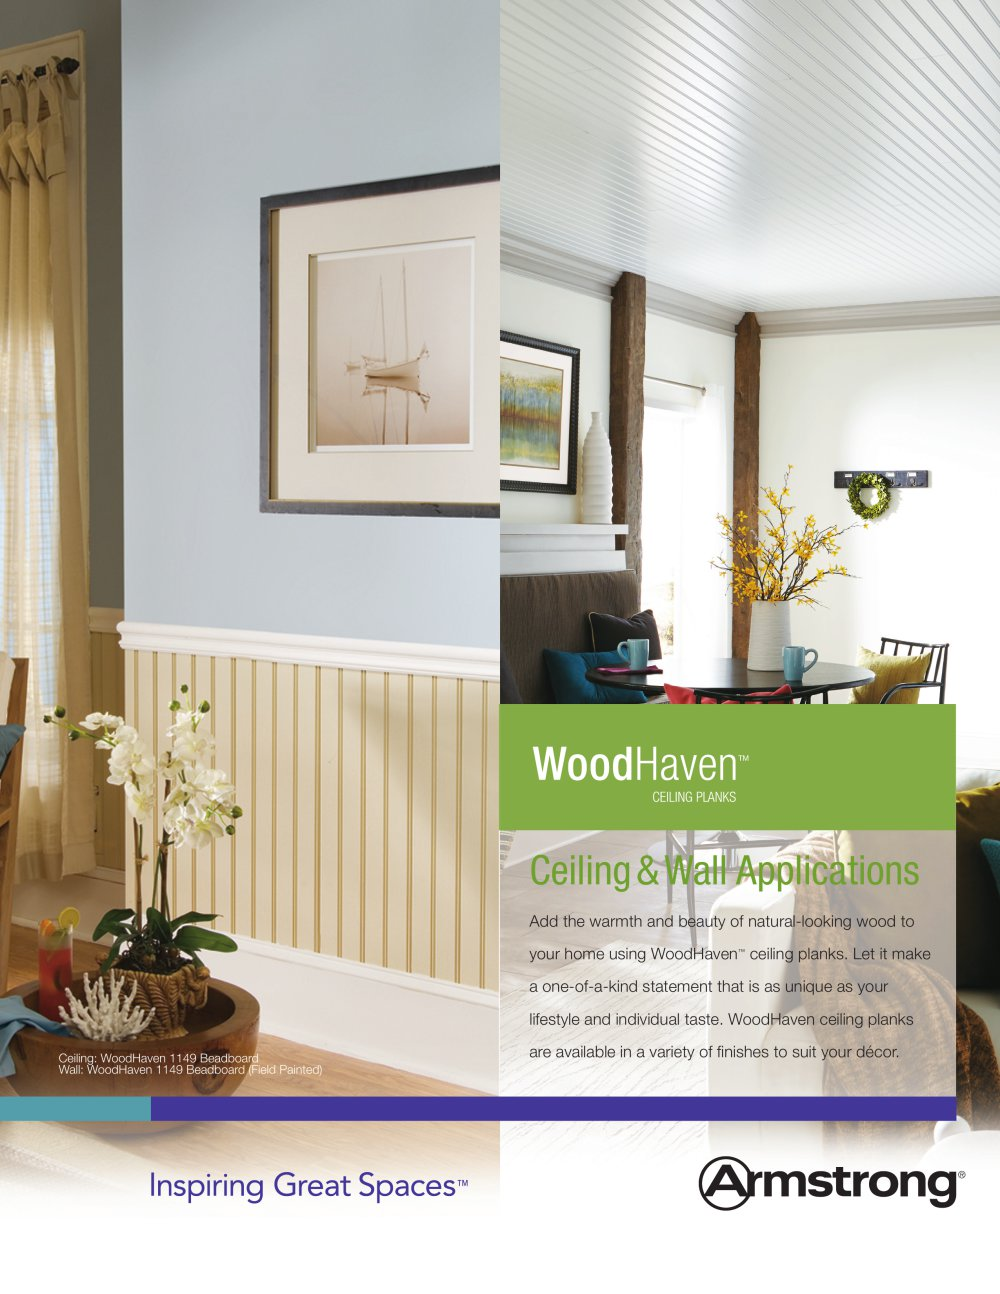 WoodHaven Ceiling Planks - Armstrong ceilings - USA - PDF Catalogs ...